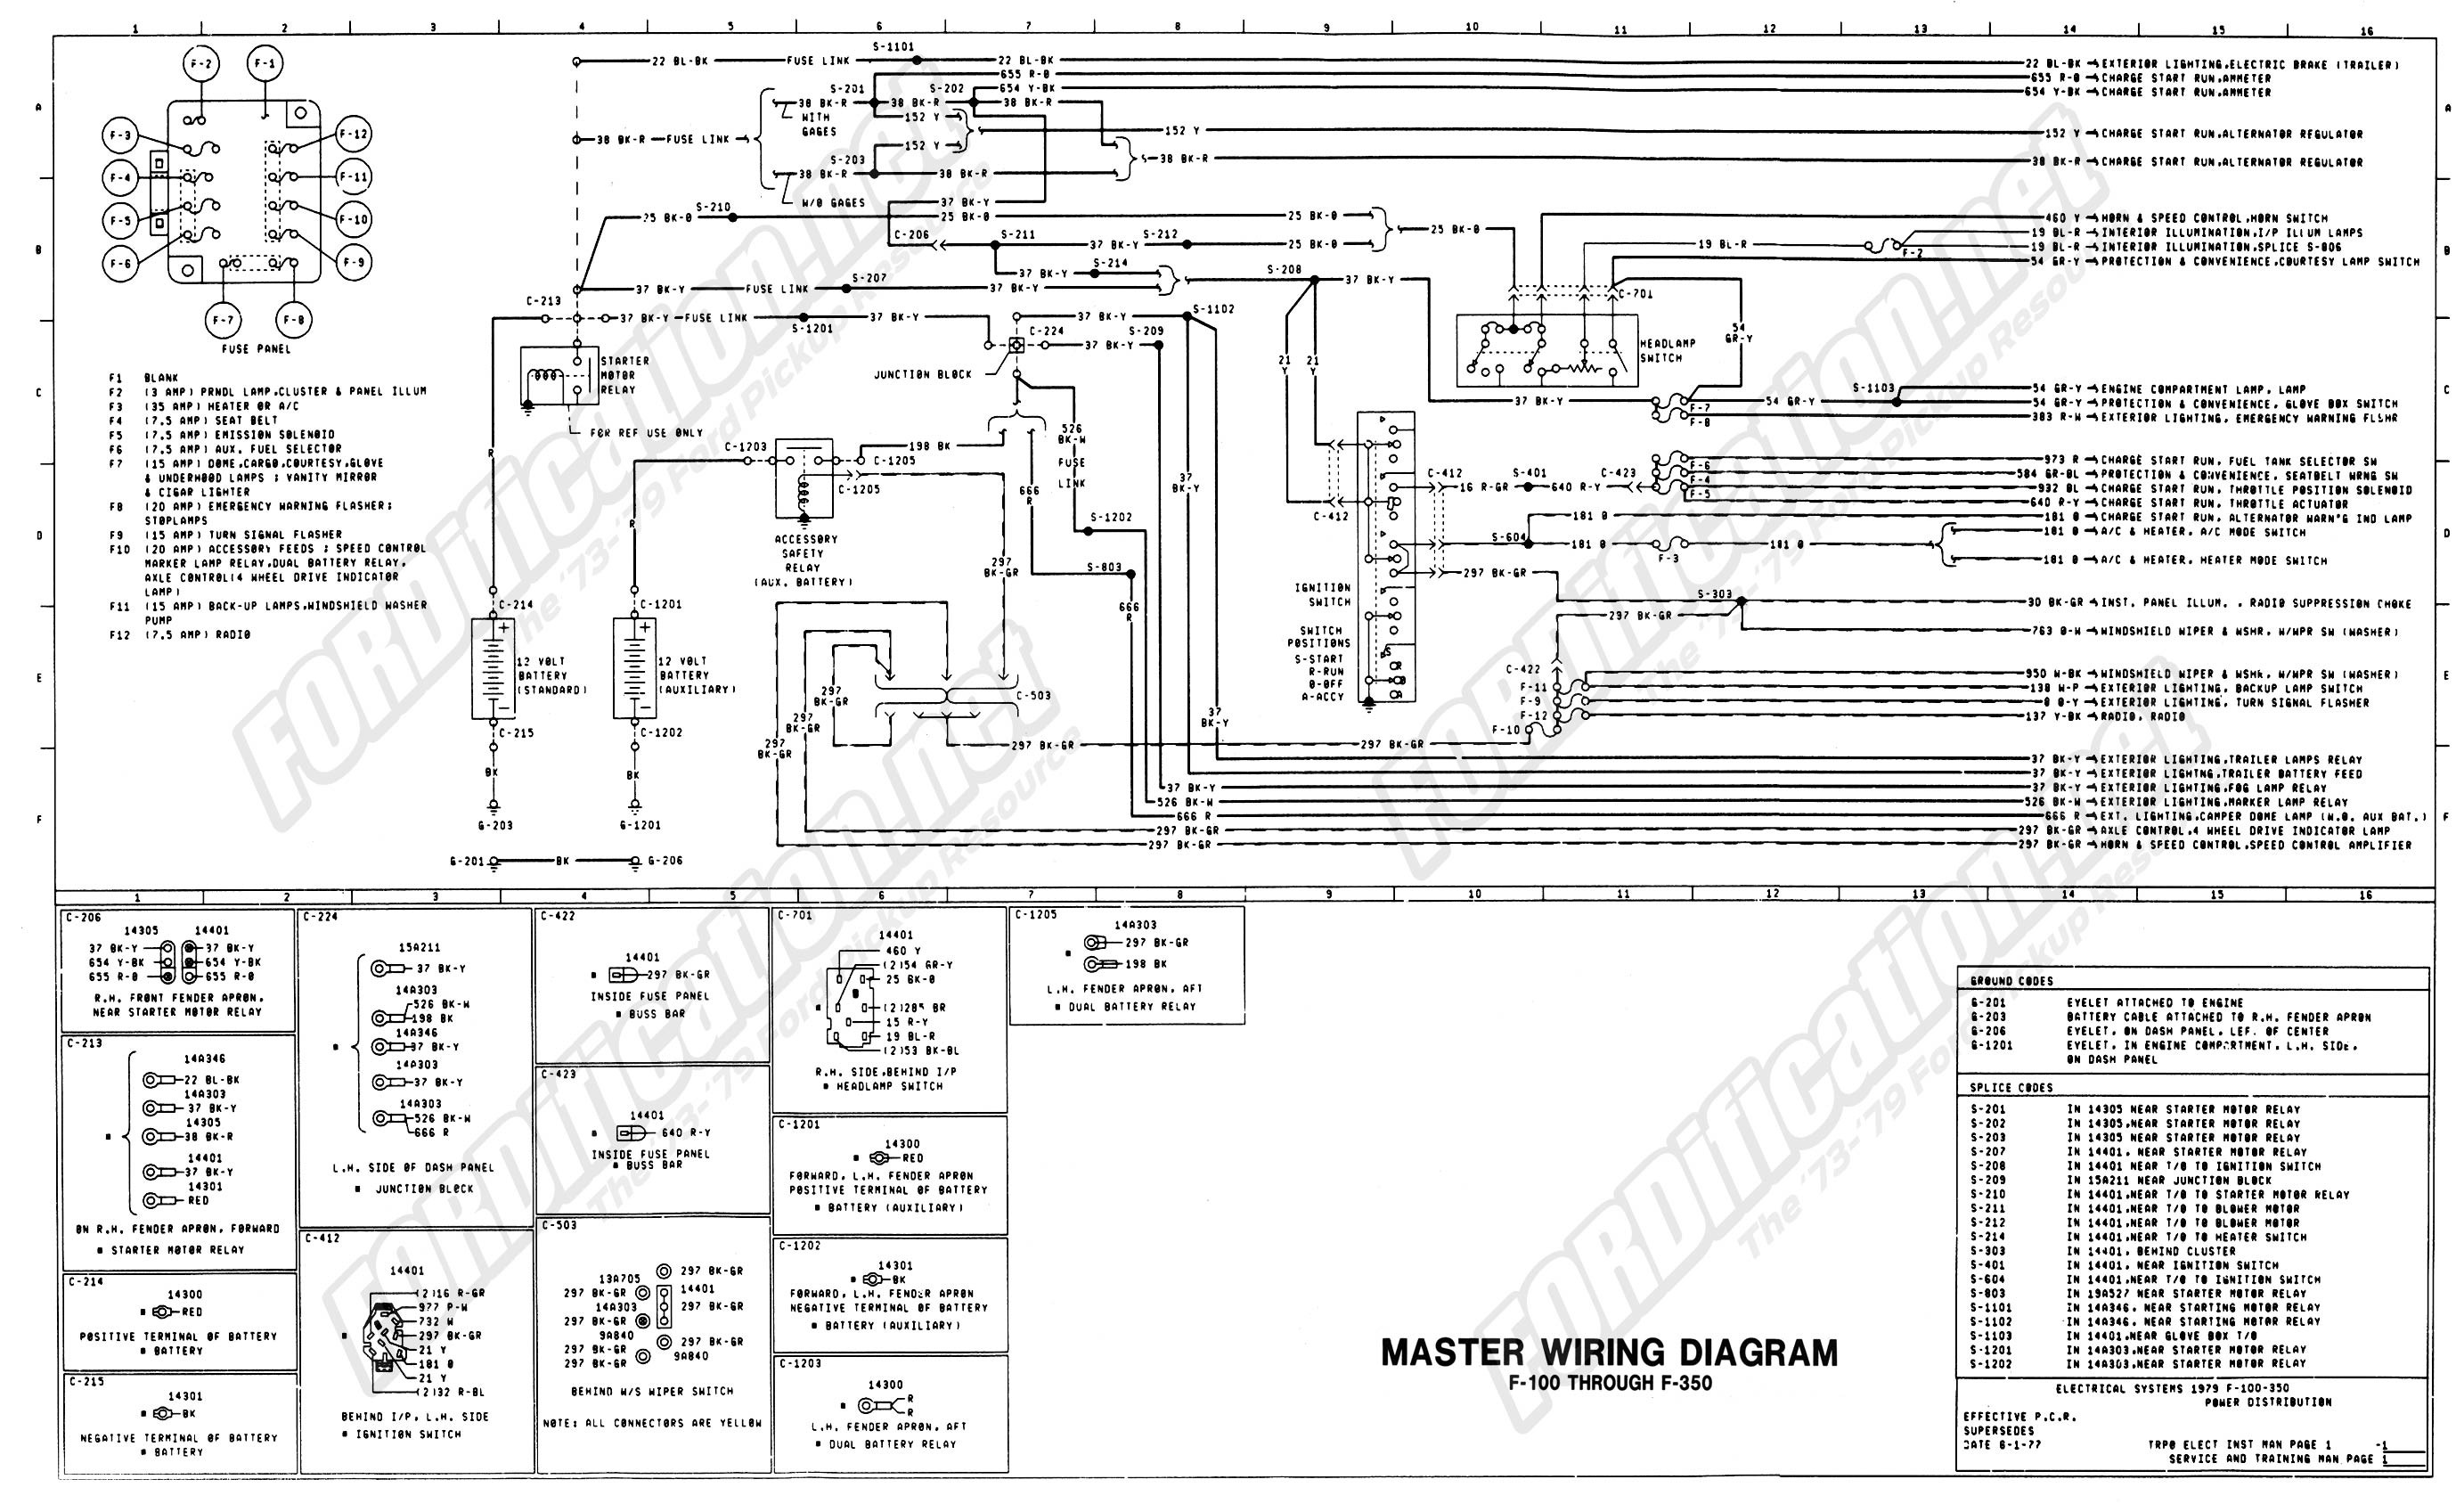 70 torino wiring diagram schematics wiring diagrams u2022 rh parntesis co  1956 ford fairlane wiring-